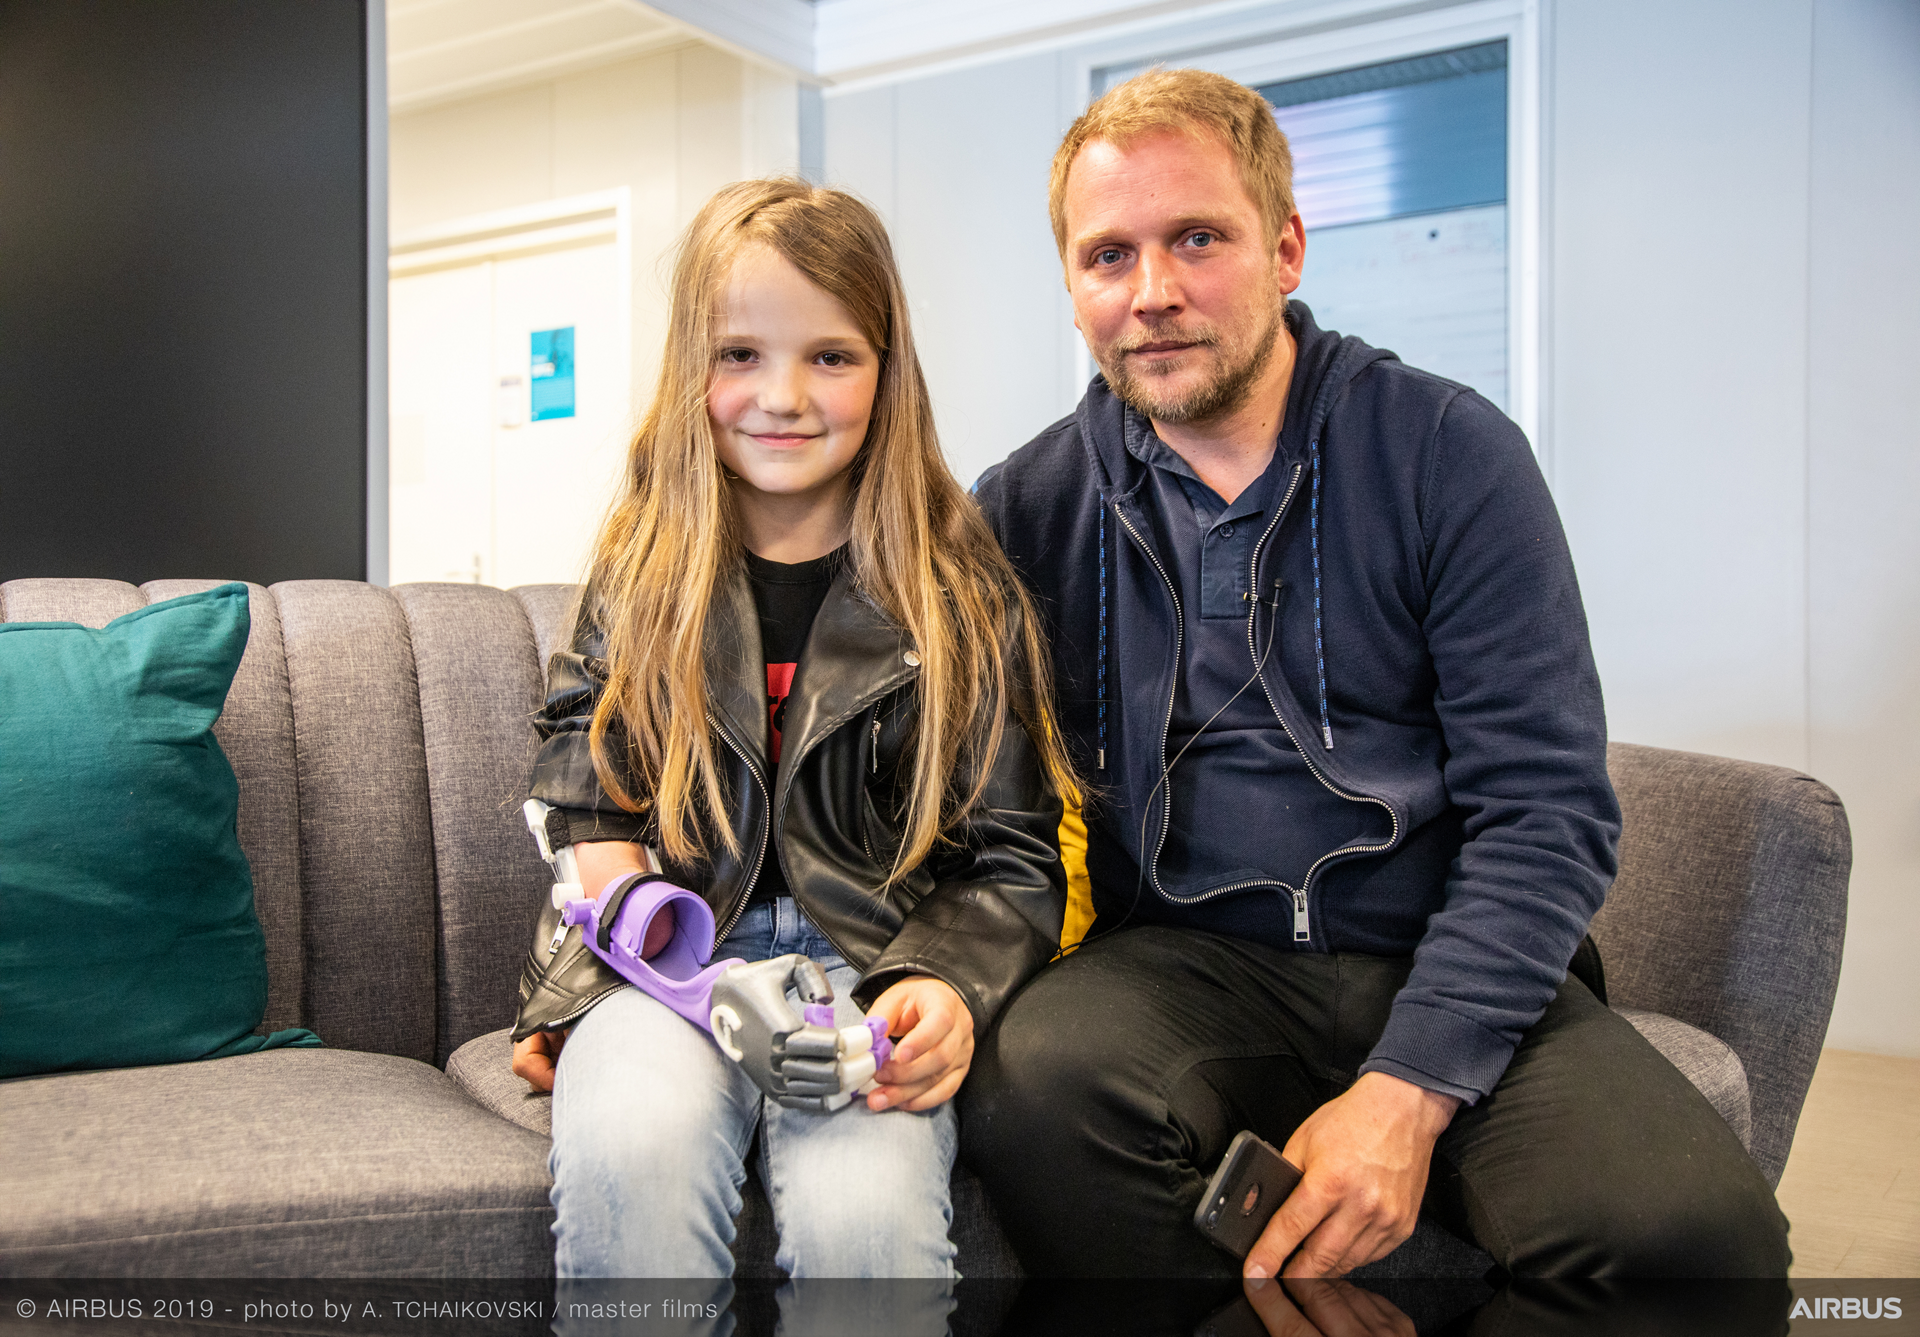 ​Volonteers in Airbus made a 3D printed arm for Lou, a little girl born with a missing arm. It is the delivery day to this little girl.